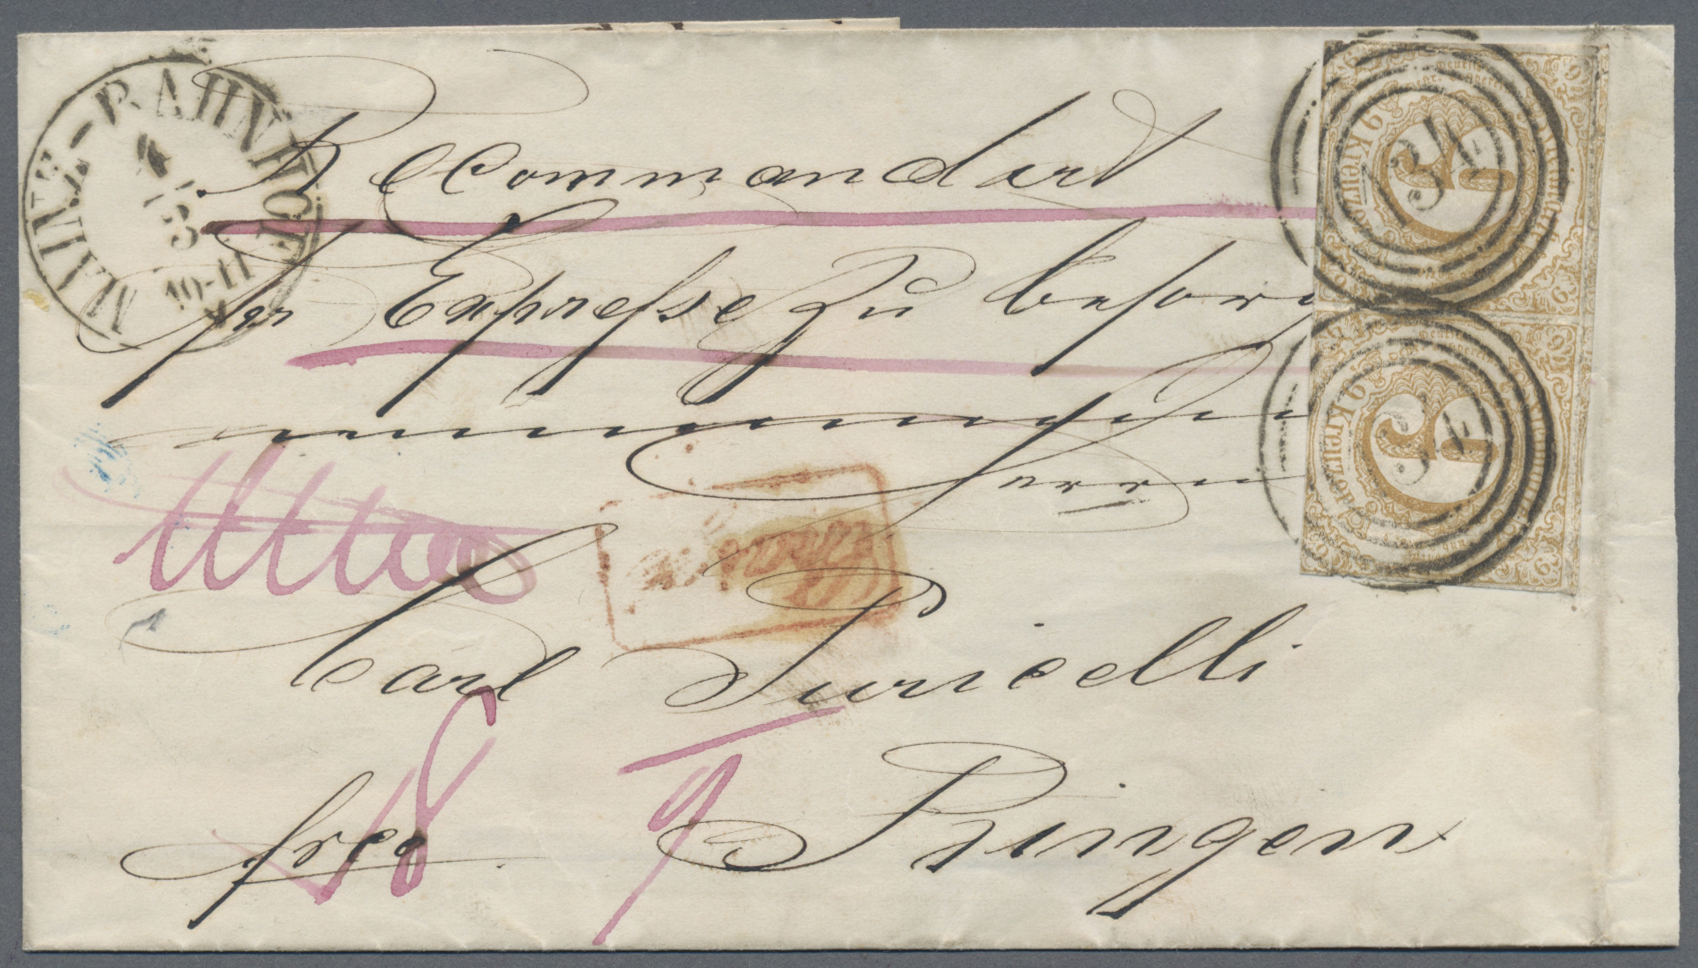 Lot 13815 - Thurn & Taxis - Marken und Briefe  -  Auktionshaus Christoph Gärtner GmbH & Co. KG Sale #46 Single lots Germany - and picture post cards